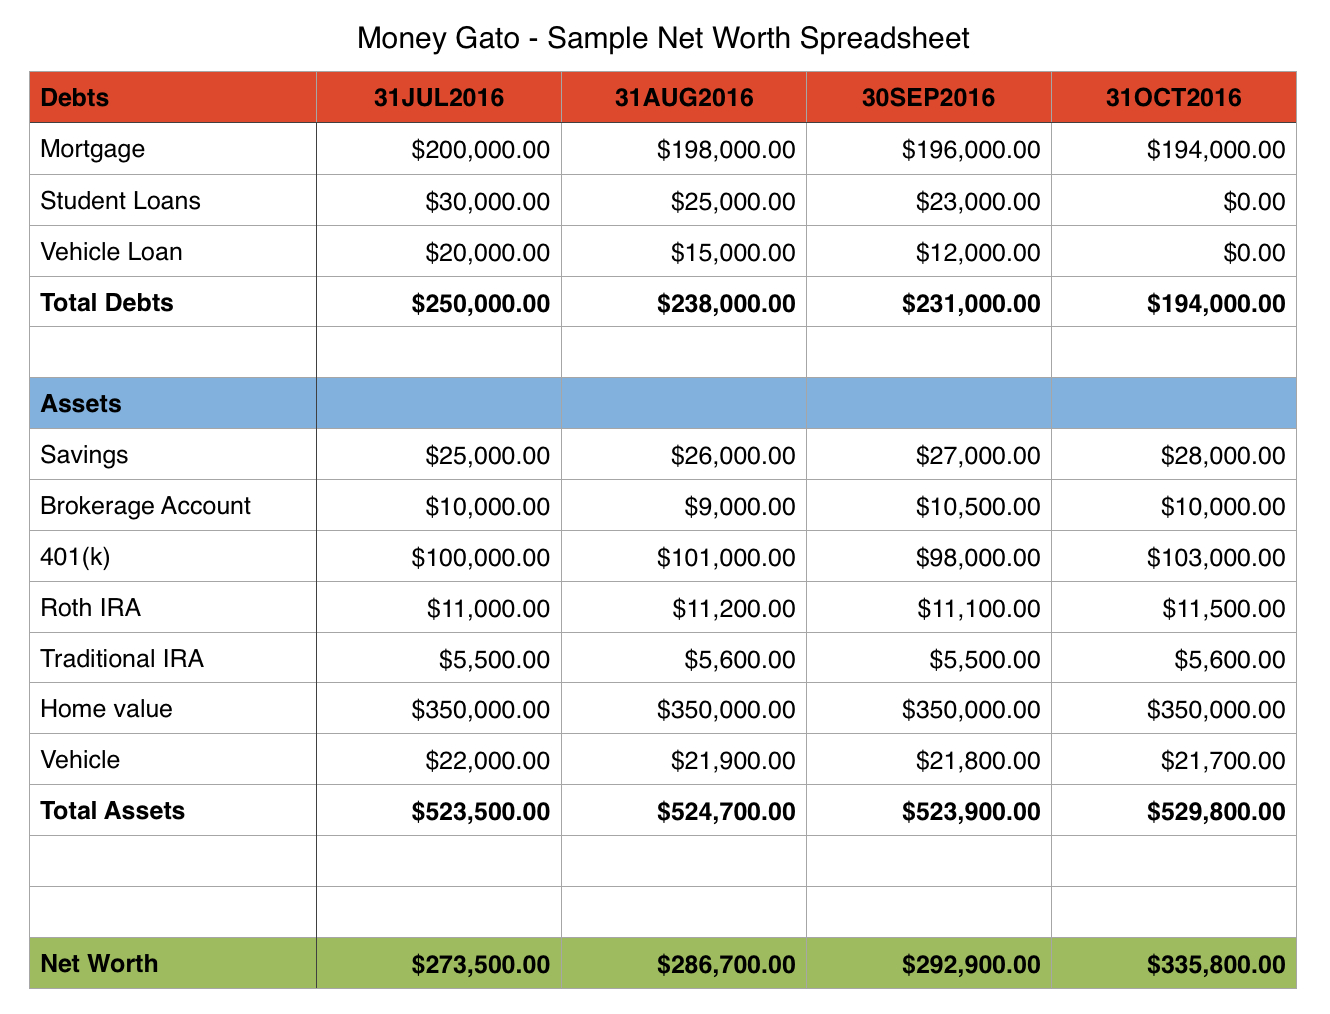 Net Worth Spreadsheet Within Moneygatosamplenetworthspreadsheet  Money Gato